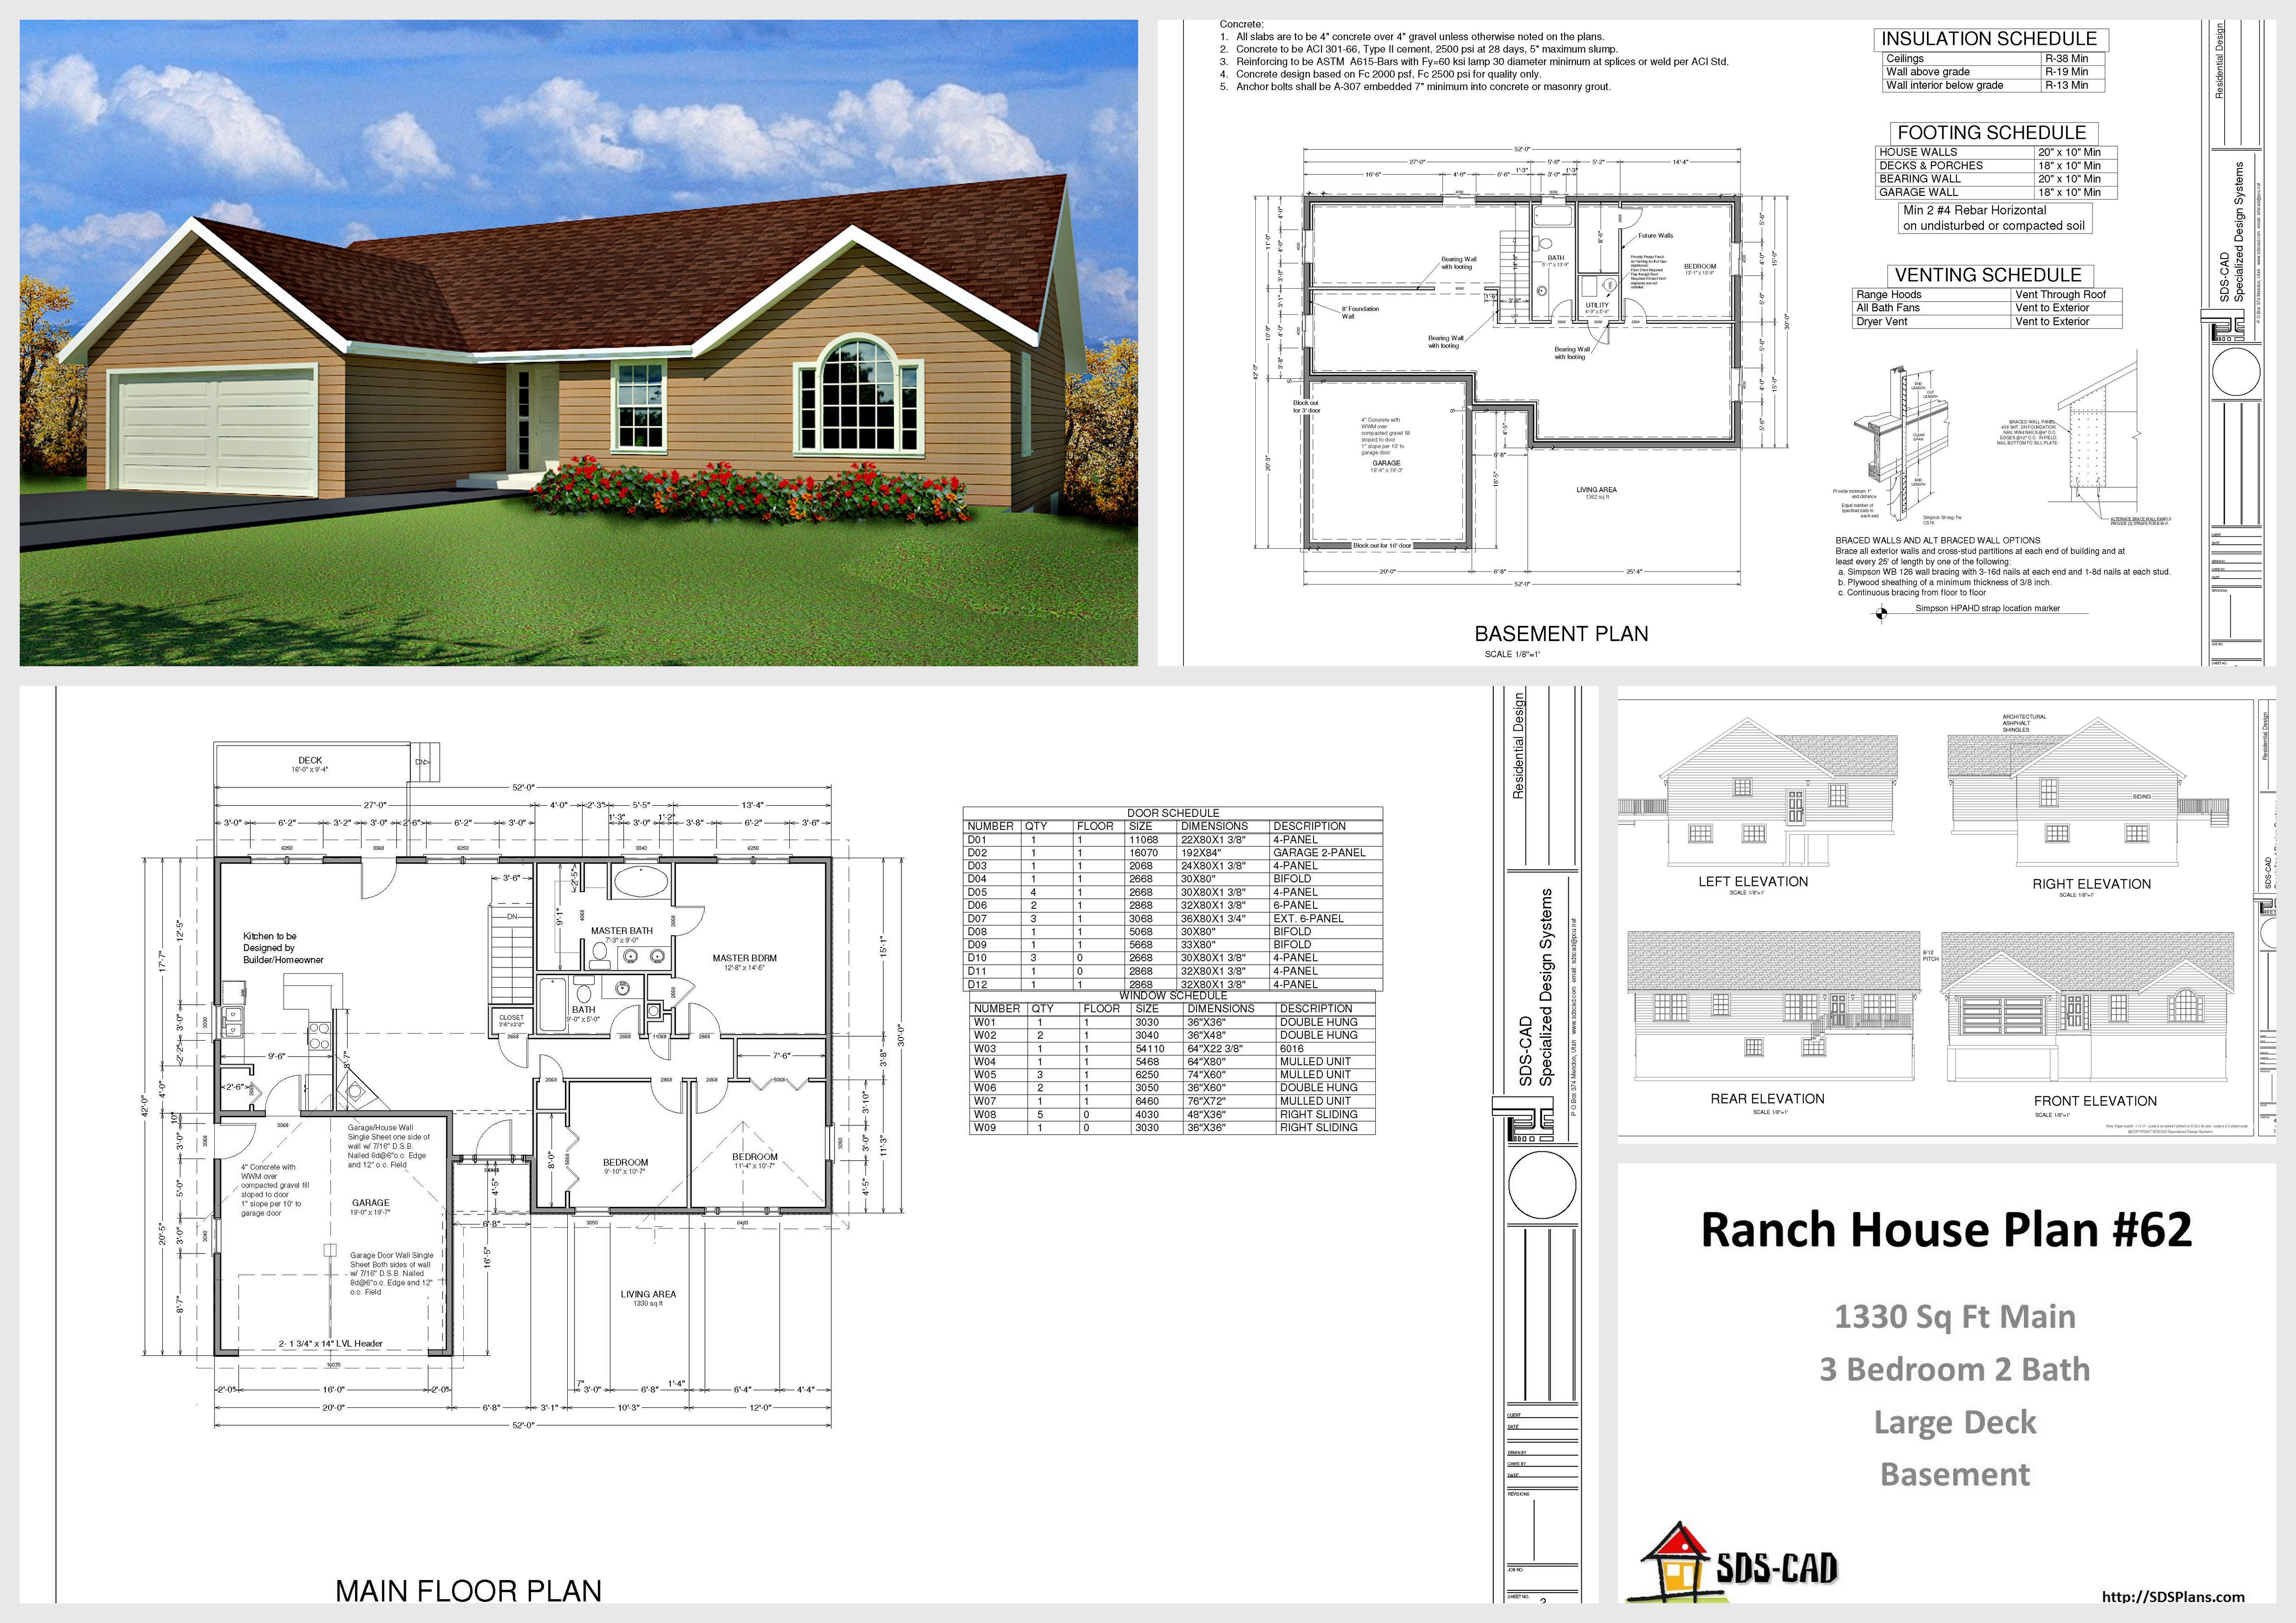 plans plan custom home design autocad dwg and pdf bddbefedb cad ...